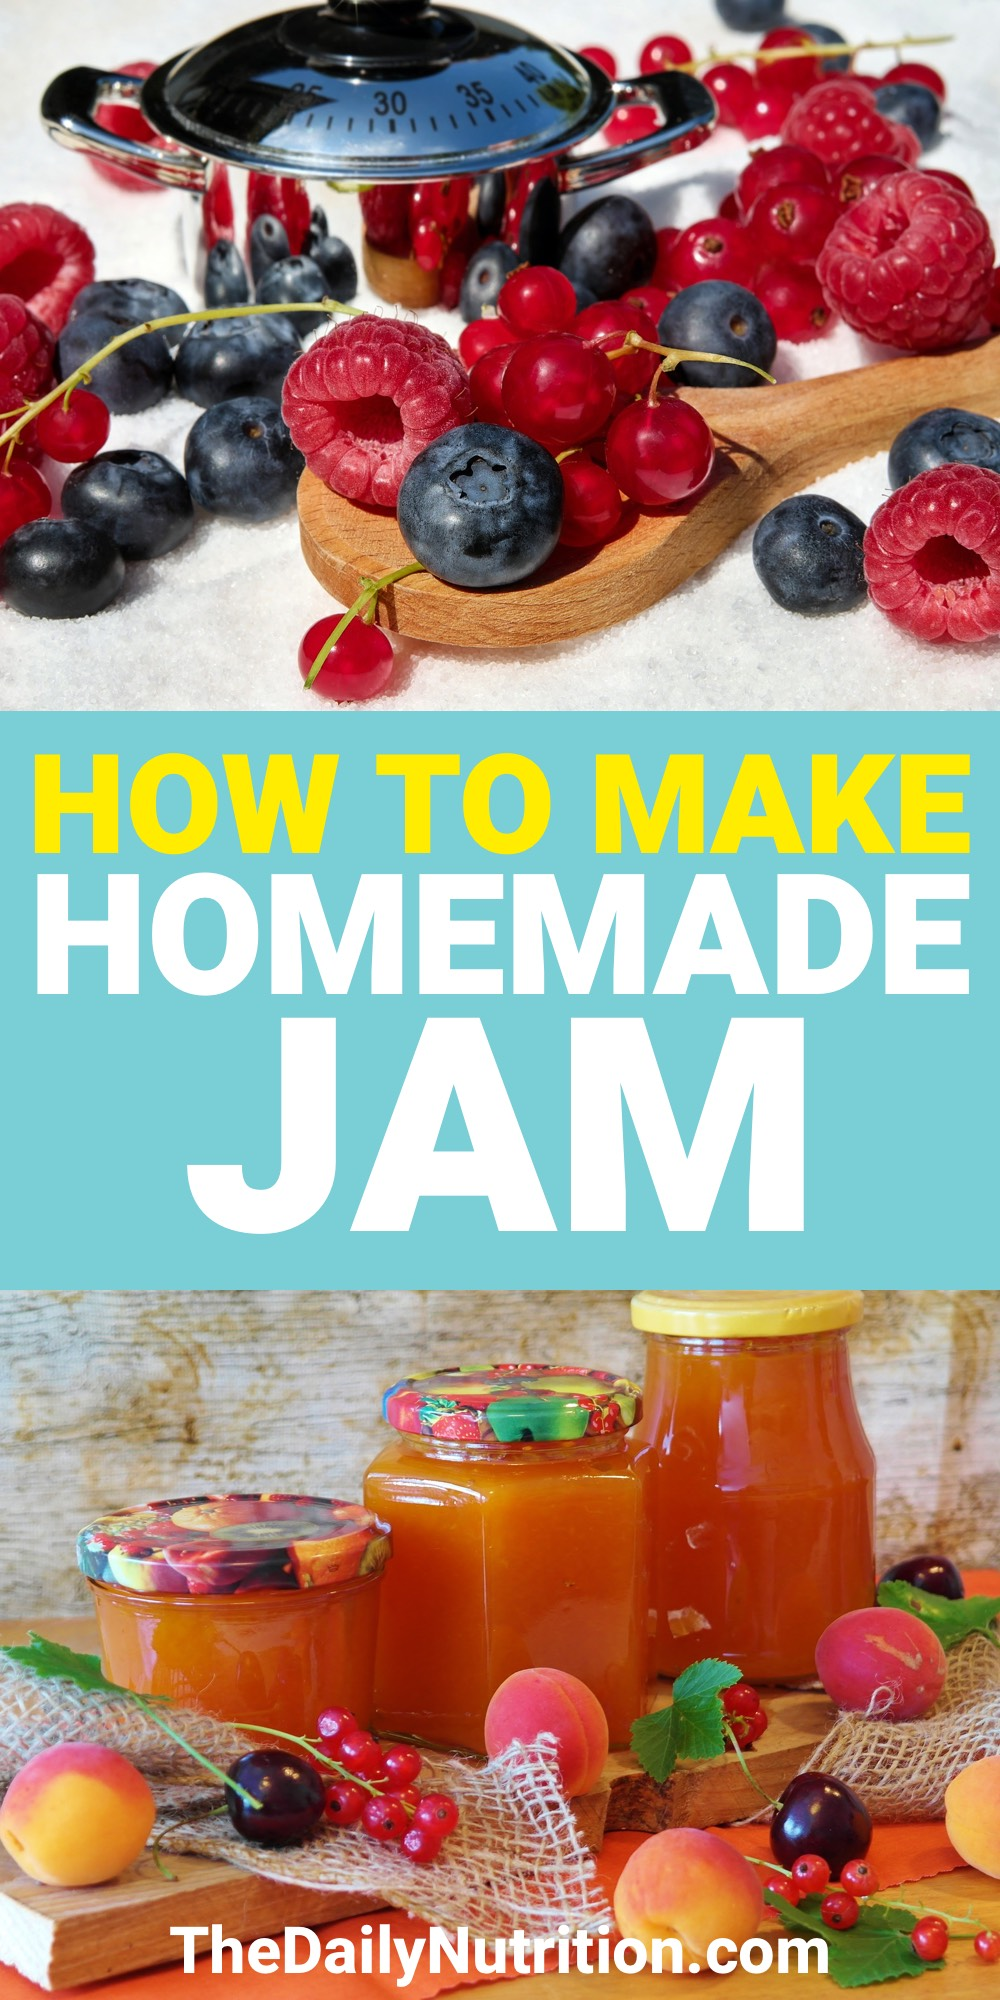 Homemade jam recipes aren't nearly as difficult as you may think. Here is a homemade jam recipe that anybody can use.